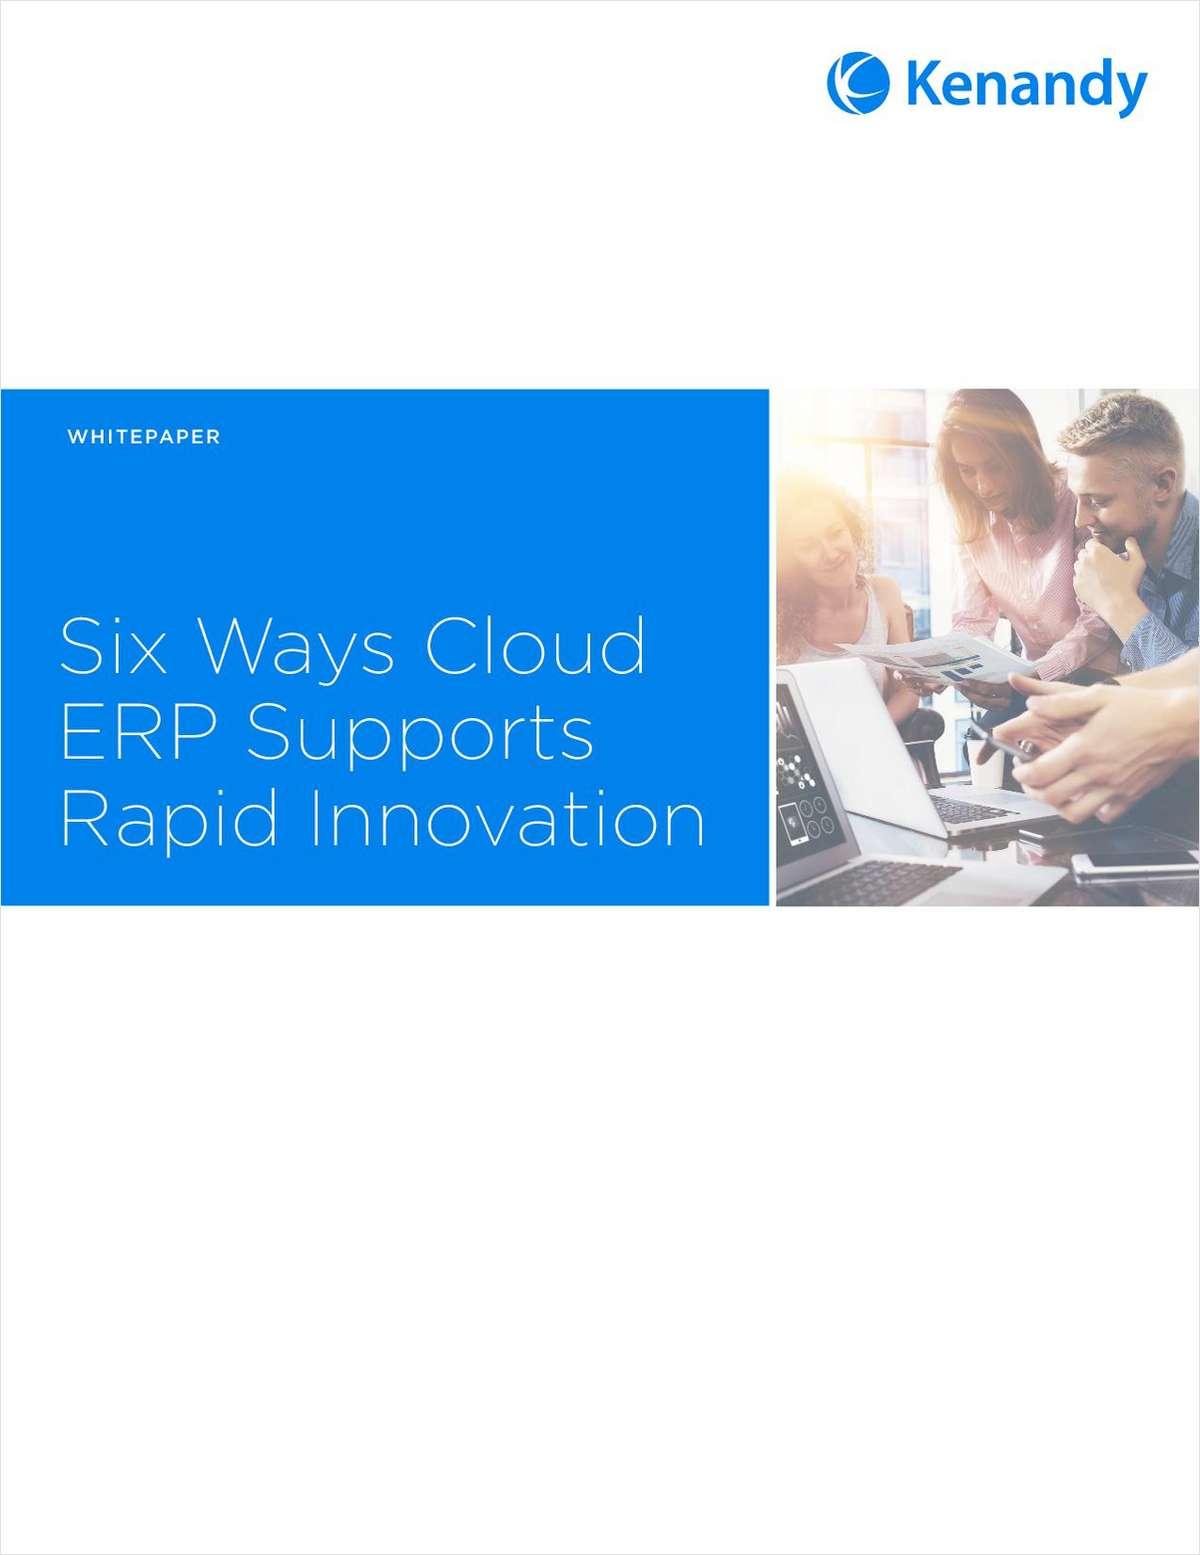 Six Ways Cloud ERP Supports Rapid Innovation